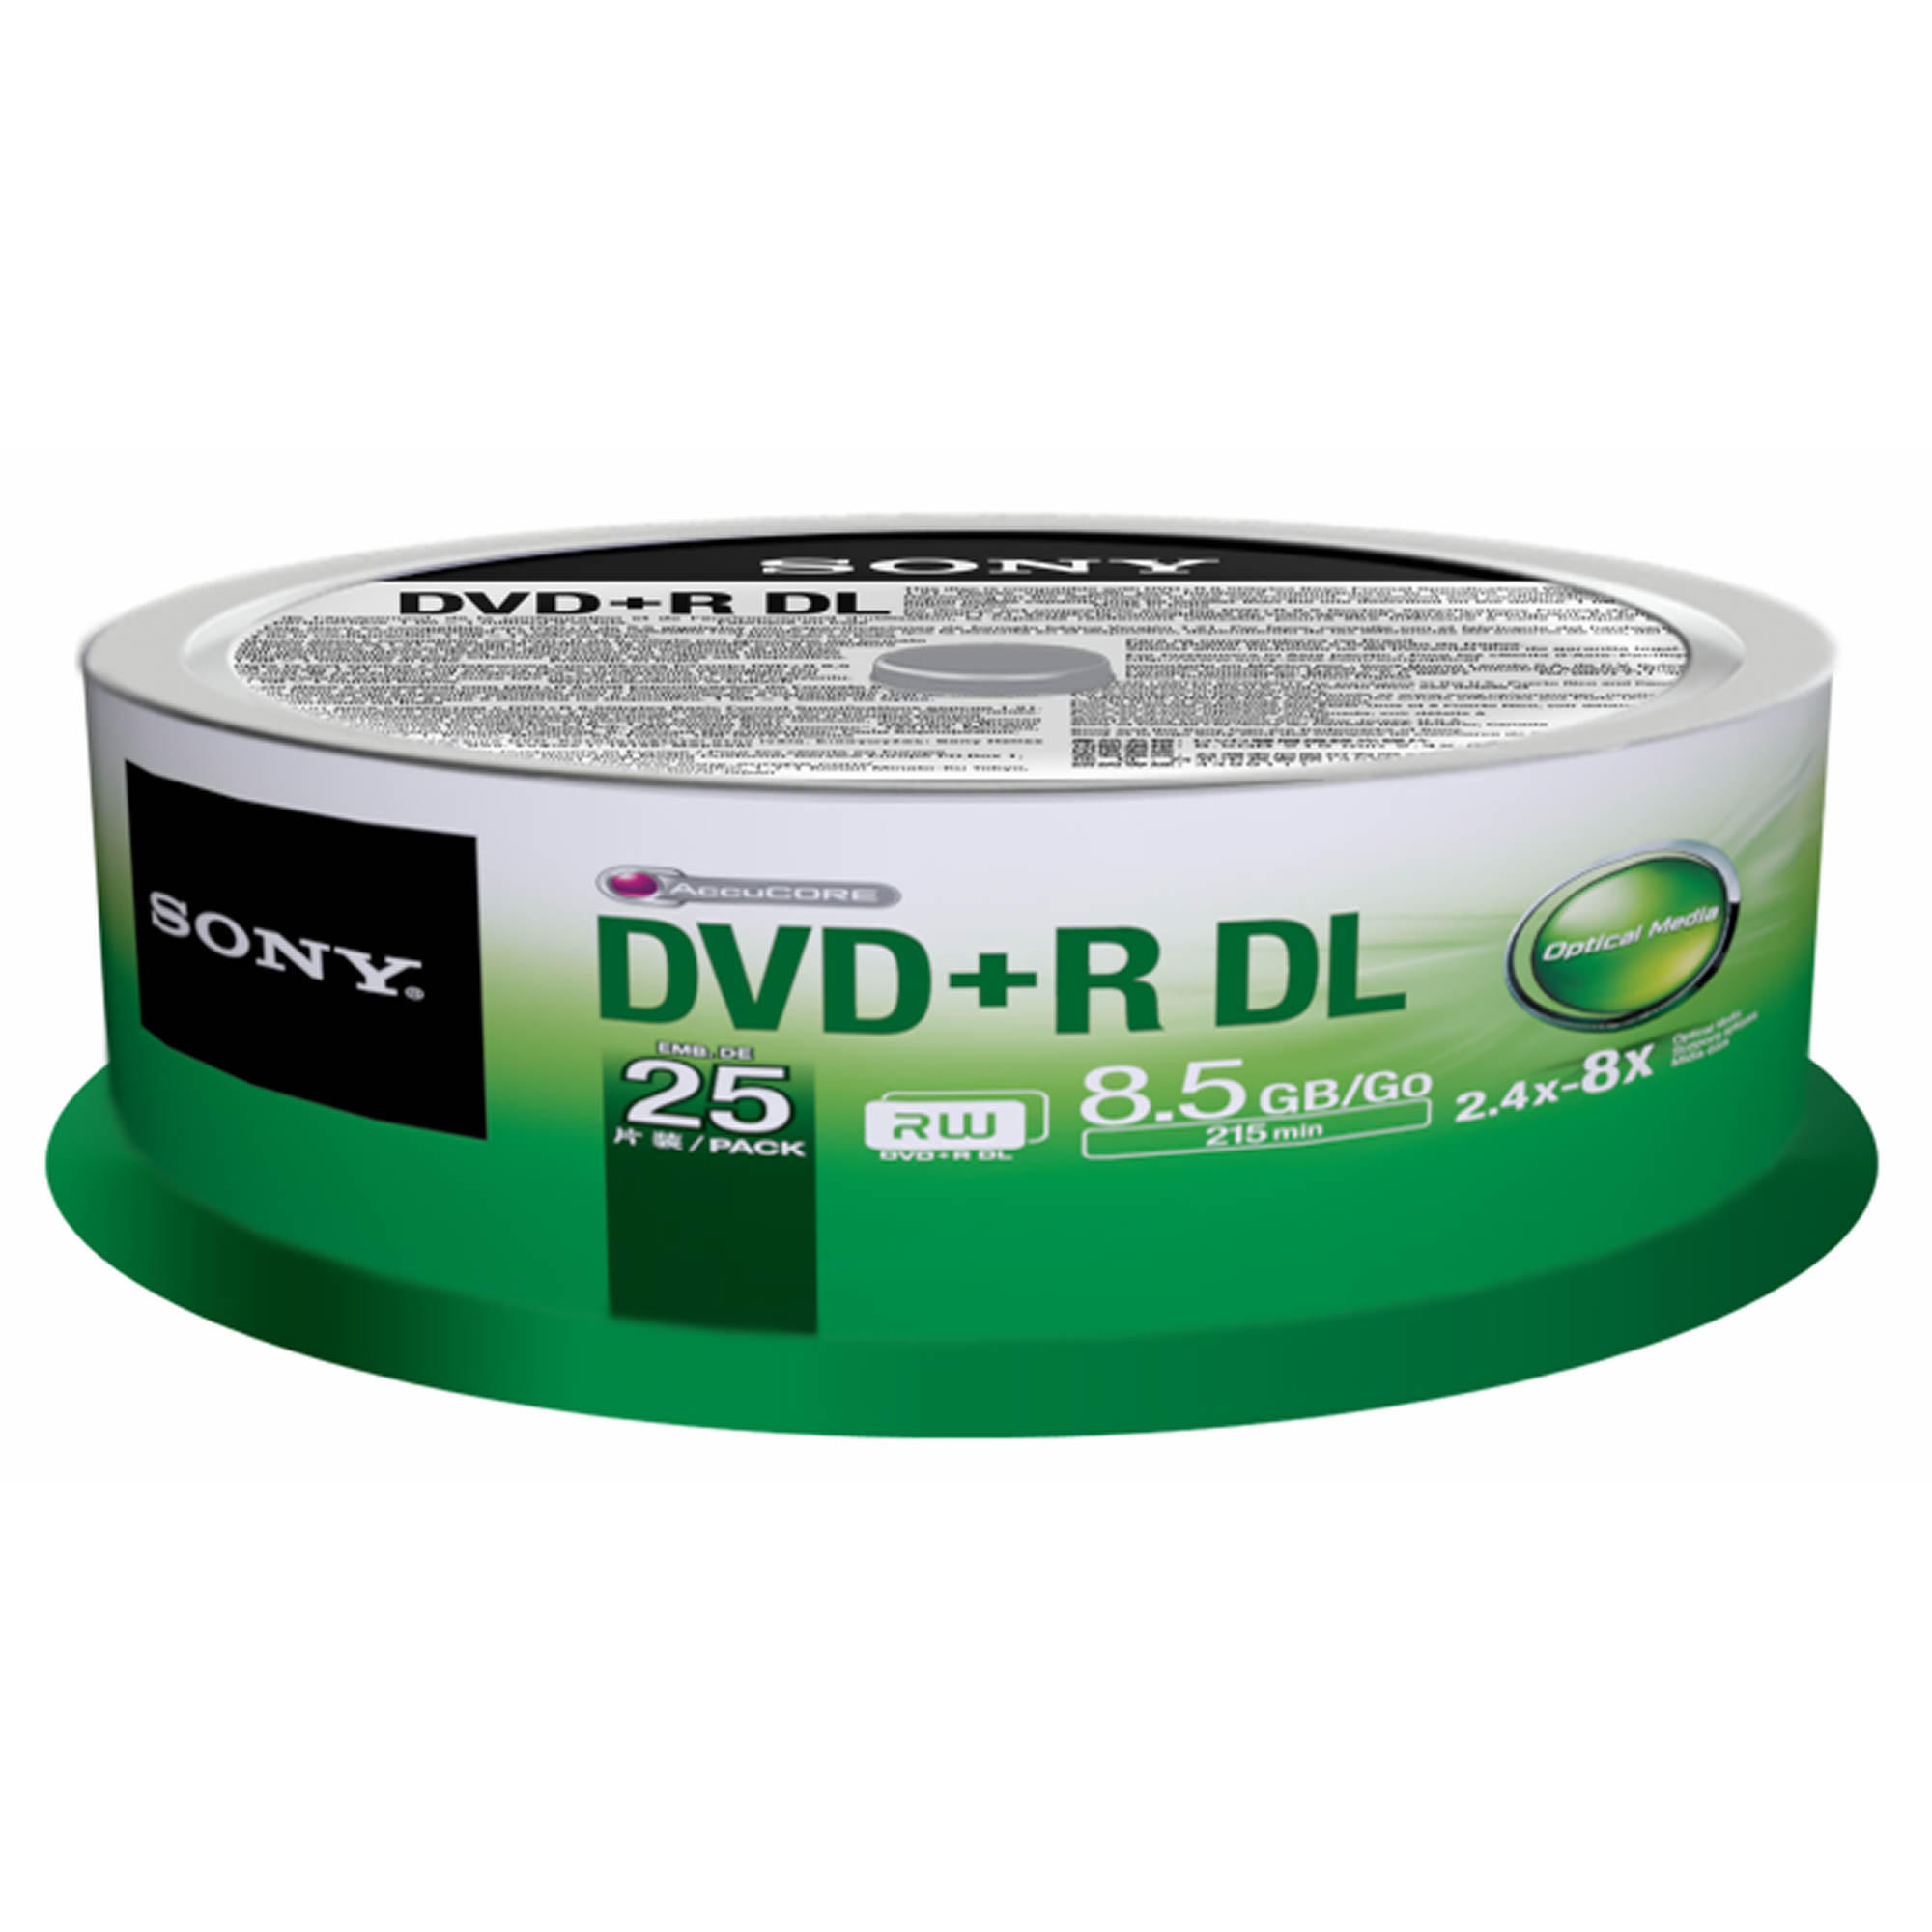 sony dvd r dual layer recordable blank discs 25 pk bj. Black Bedroom Furniture Sets. Home Design Ideas